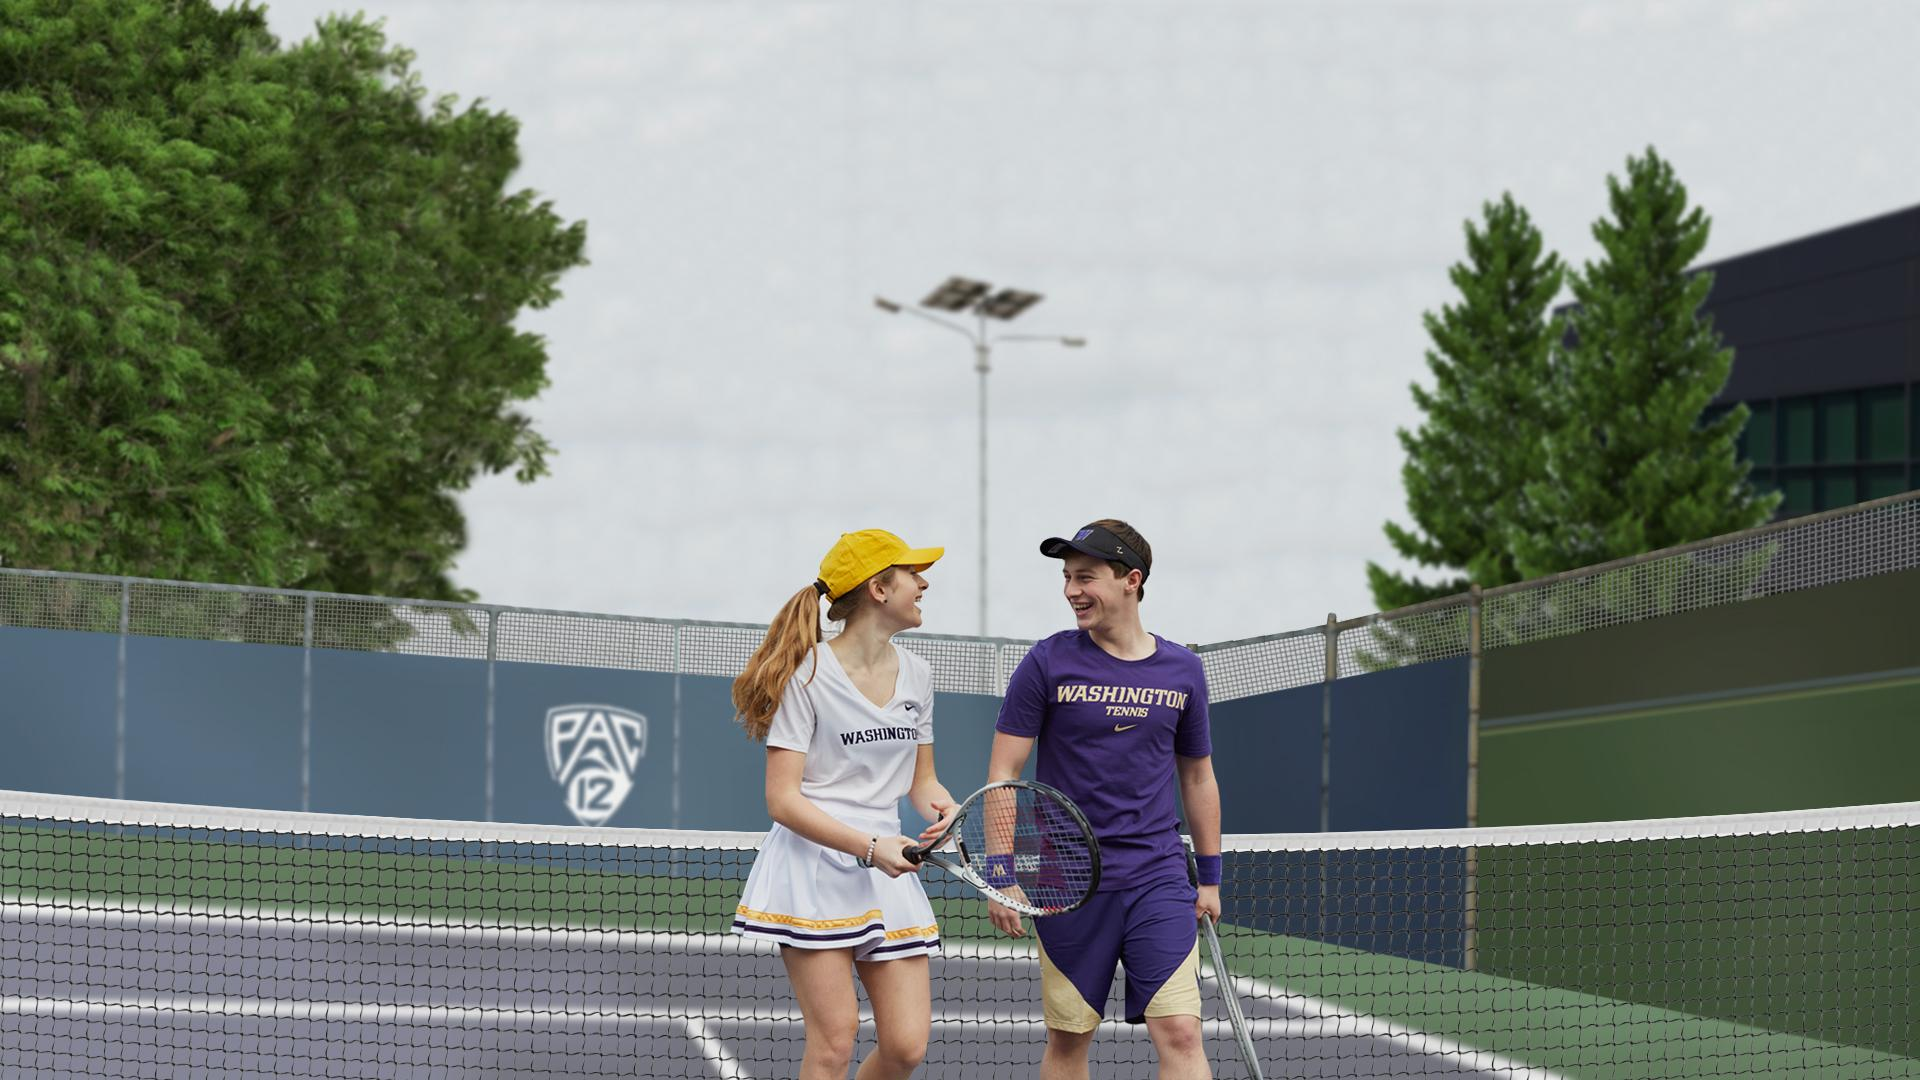 Fall In Love With UW Tennis Gear for Doubles Matches or Double Dates